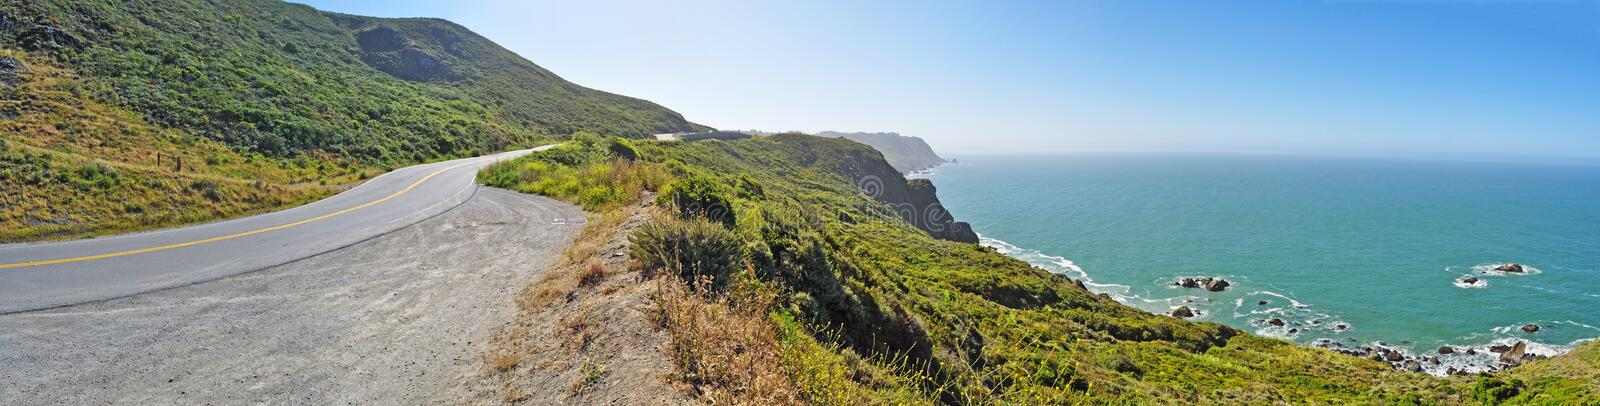 San Francisco, road, Muir Woods, nature, landscape, cliff, panoramic, scenic drive, California, United States of America, Usa. Panoramic view of the road to Muir stock photo